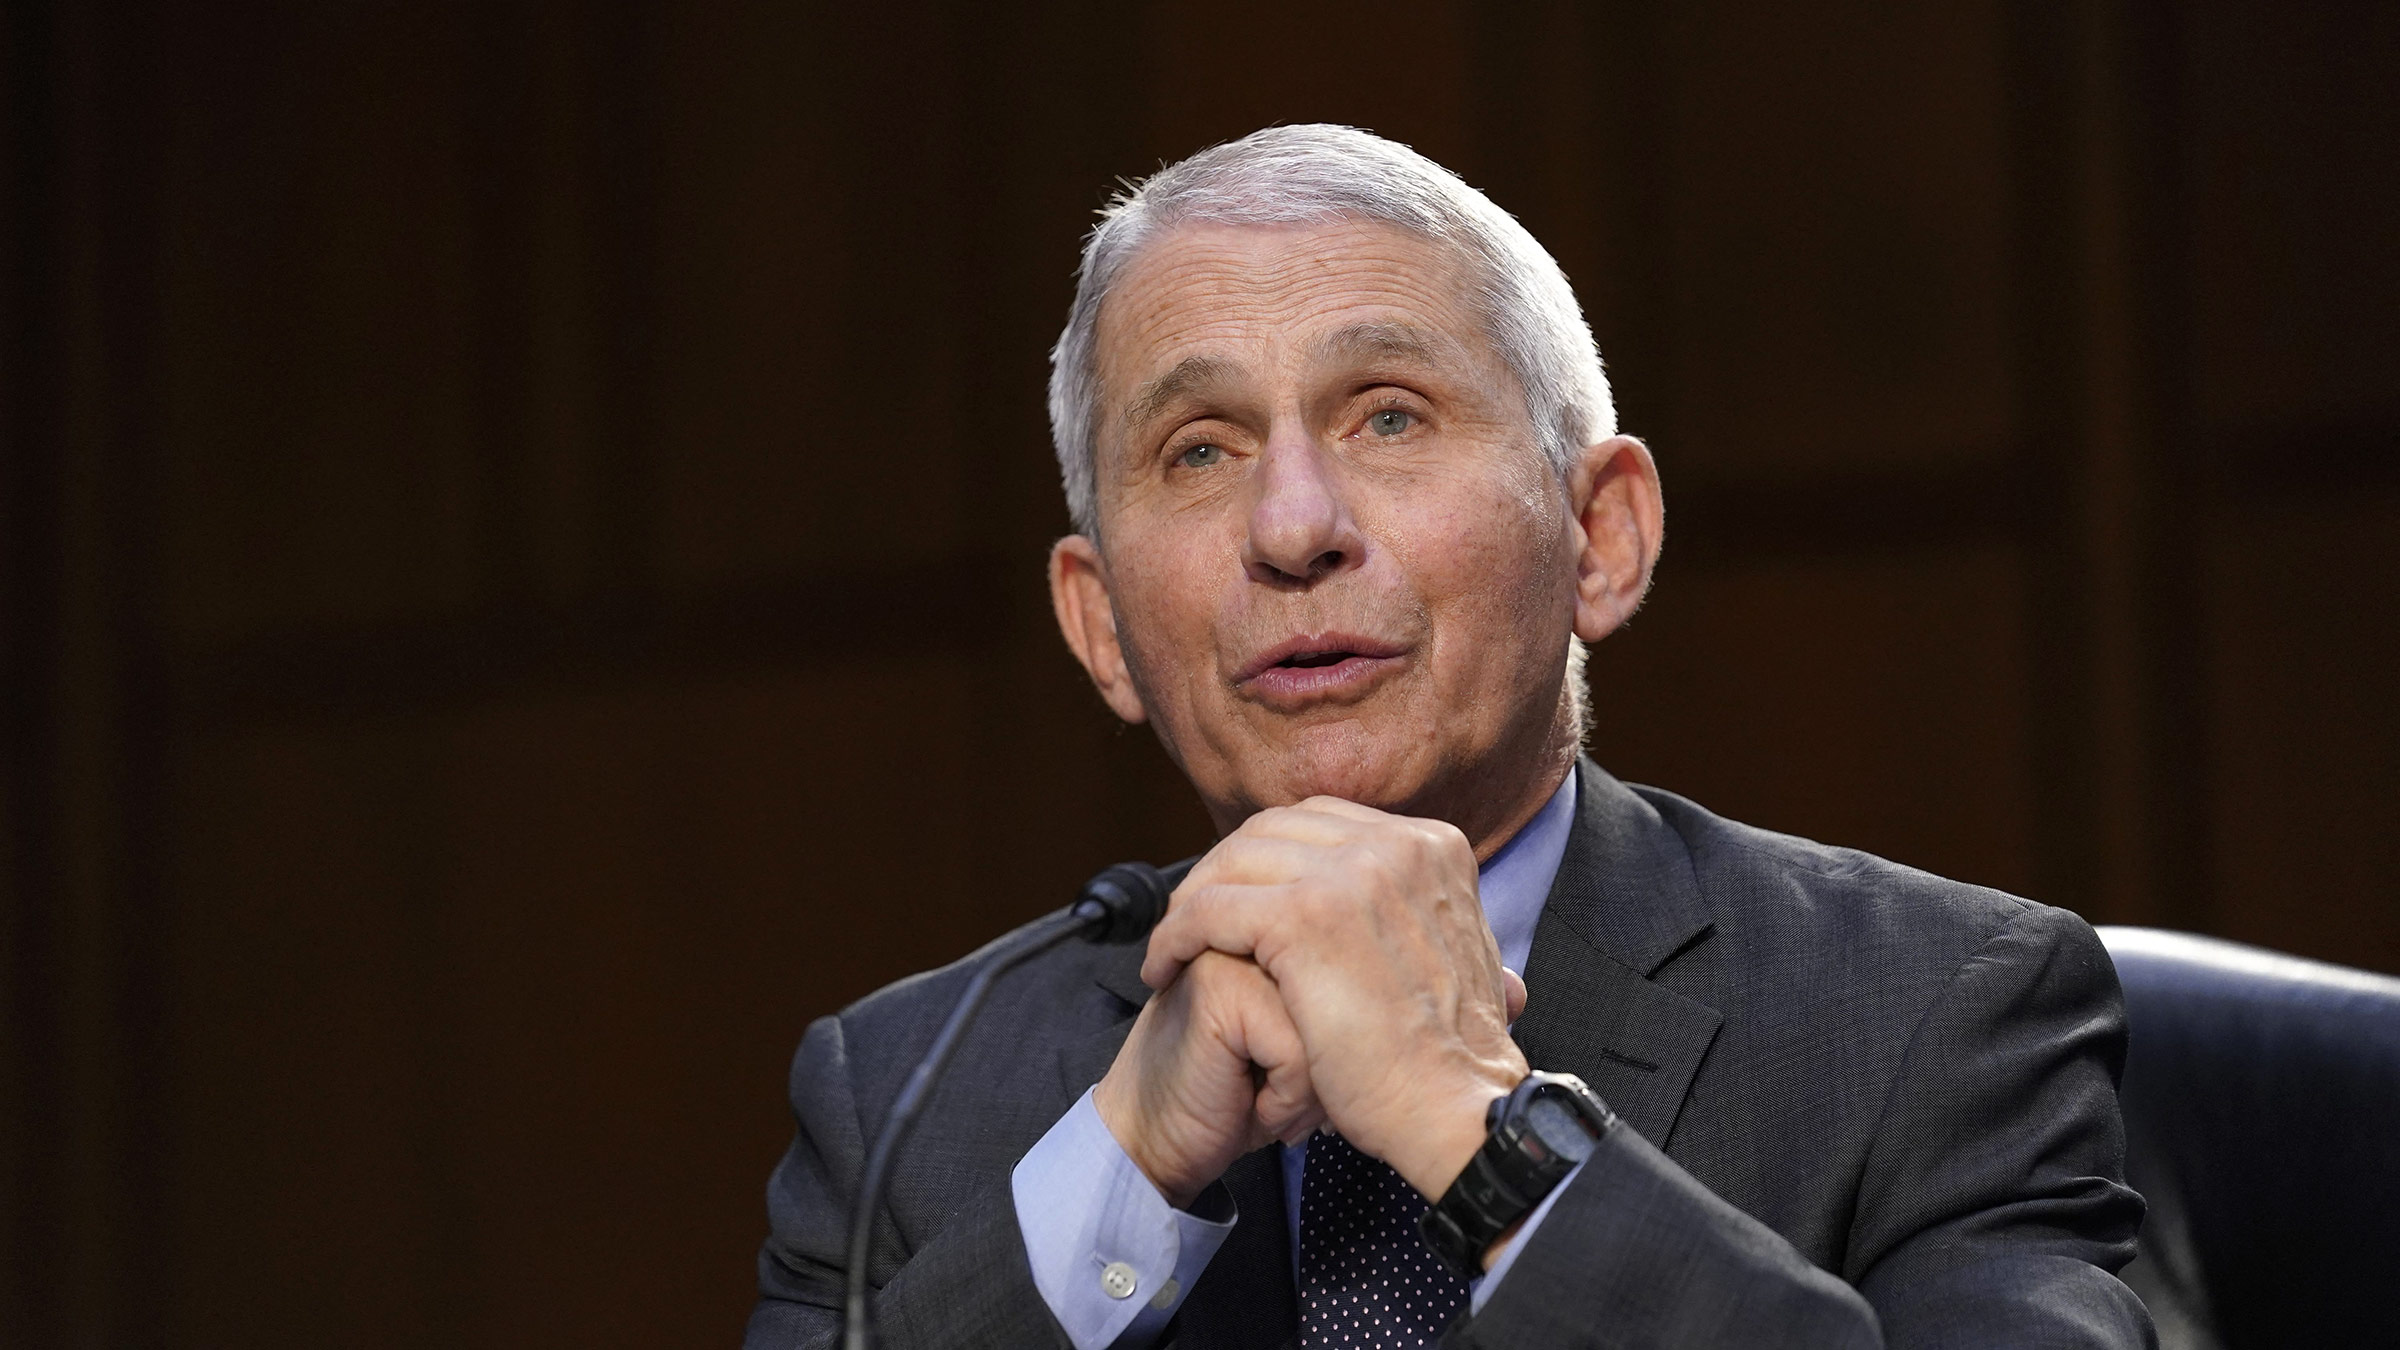 Dr. Anthony Fauci testifies during a Senate Health, Education, Labor and Pensions Committee hearing in Washington, DC, on March 18.